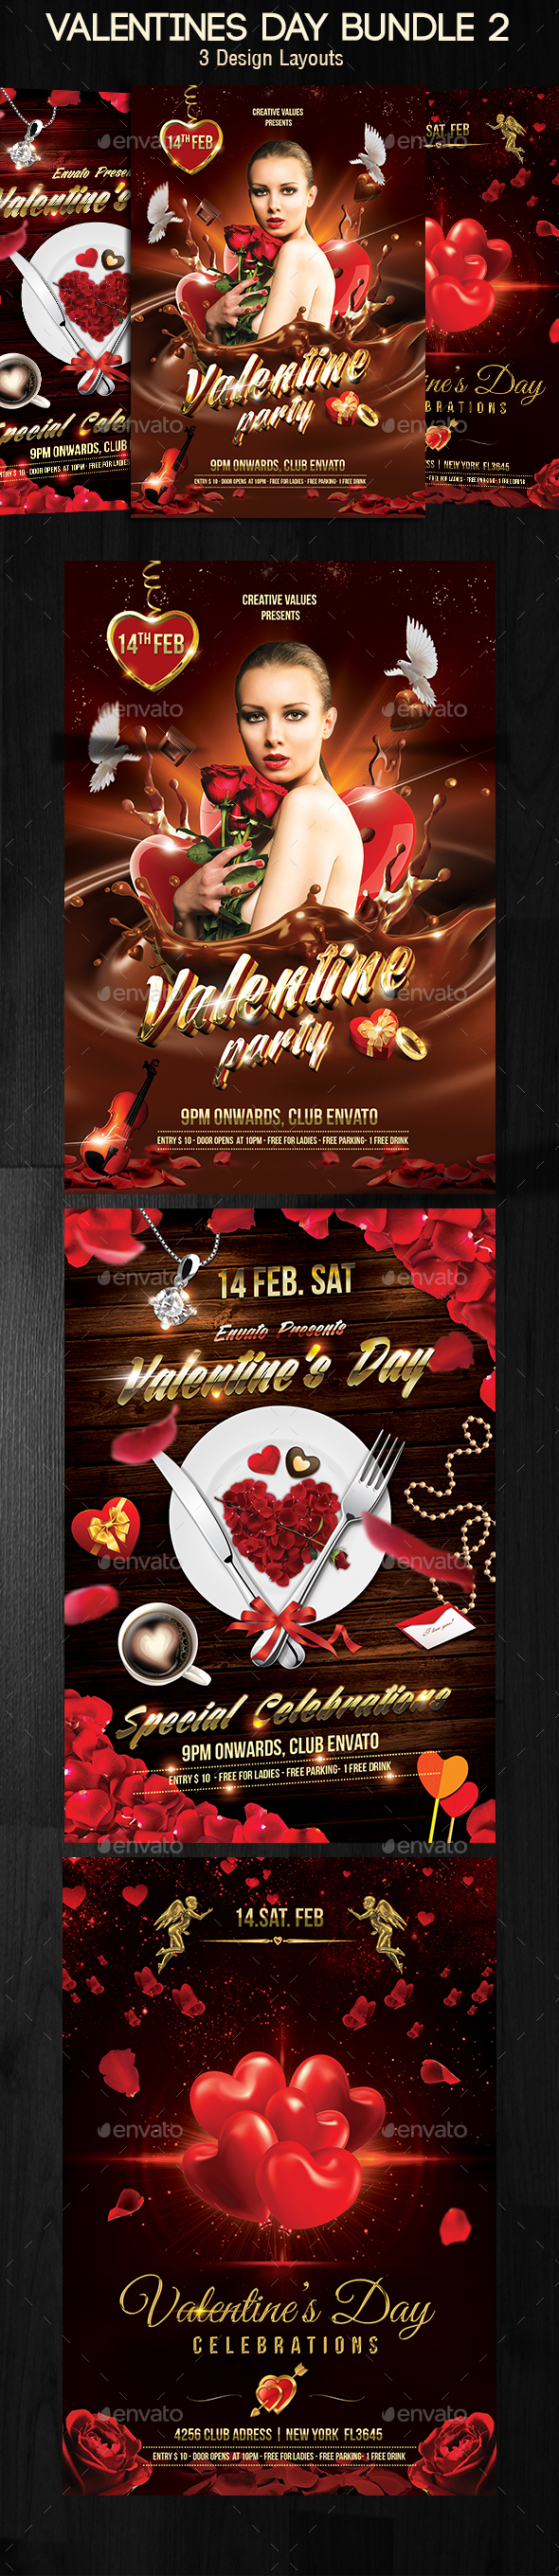 Valentines Day Flyer Bundle v2 - Print Templates